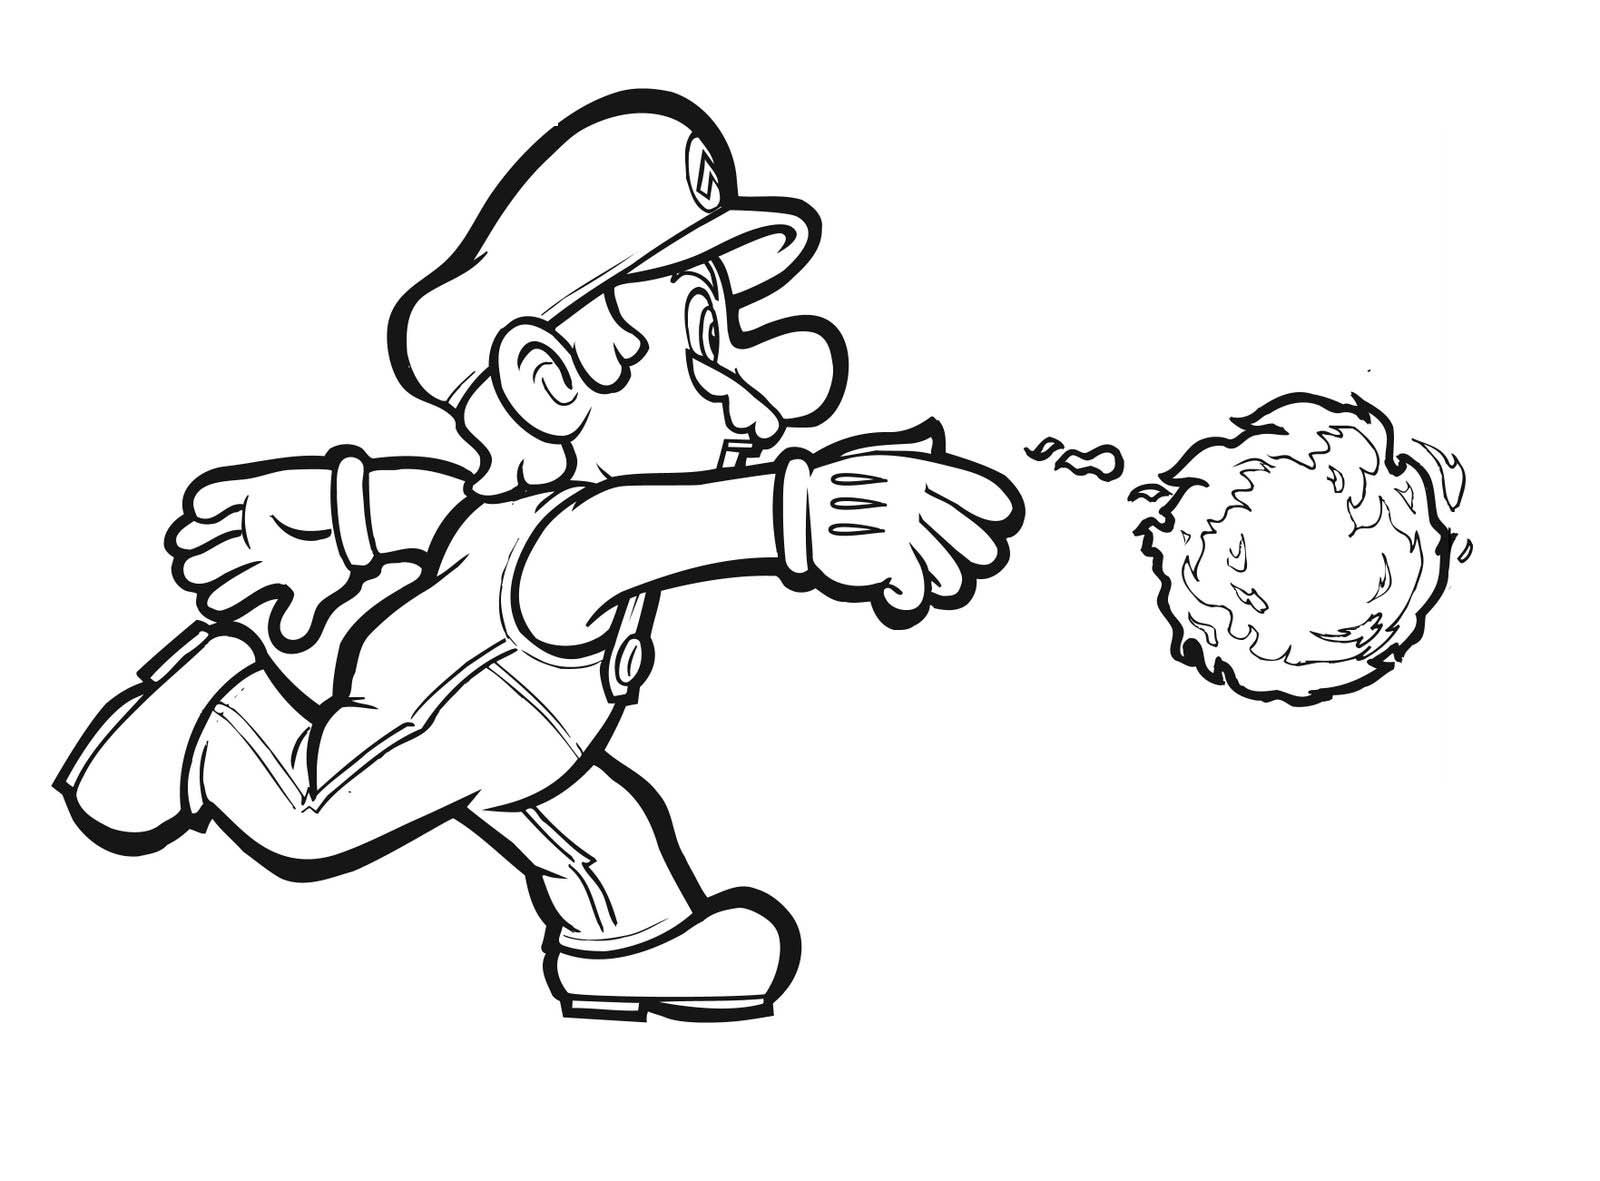 street art coloring pages Luigi Coloring Sheet Quiet TimeJOLT